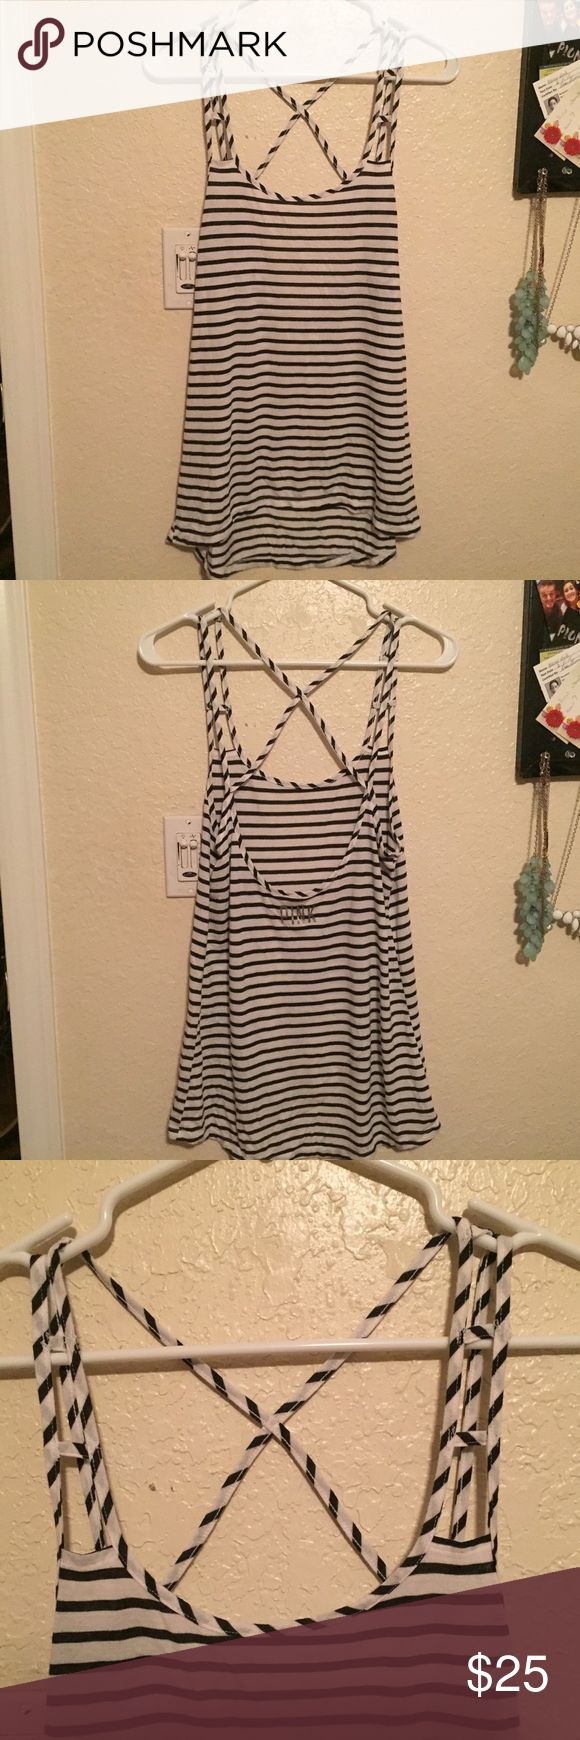 Stripped tang top PINK Victoria secret stripped tang top. Great with leggings and a sports bra. Willing to talk on price. PINK Victoria's Secret Tops Tank Tops